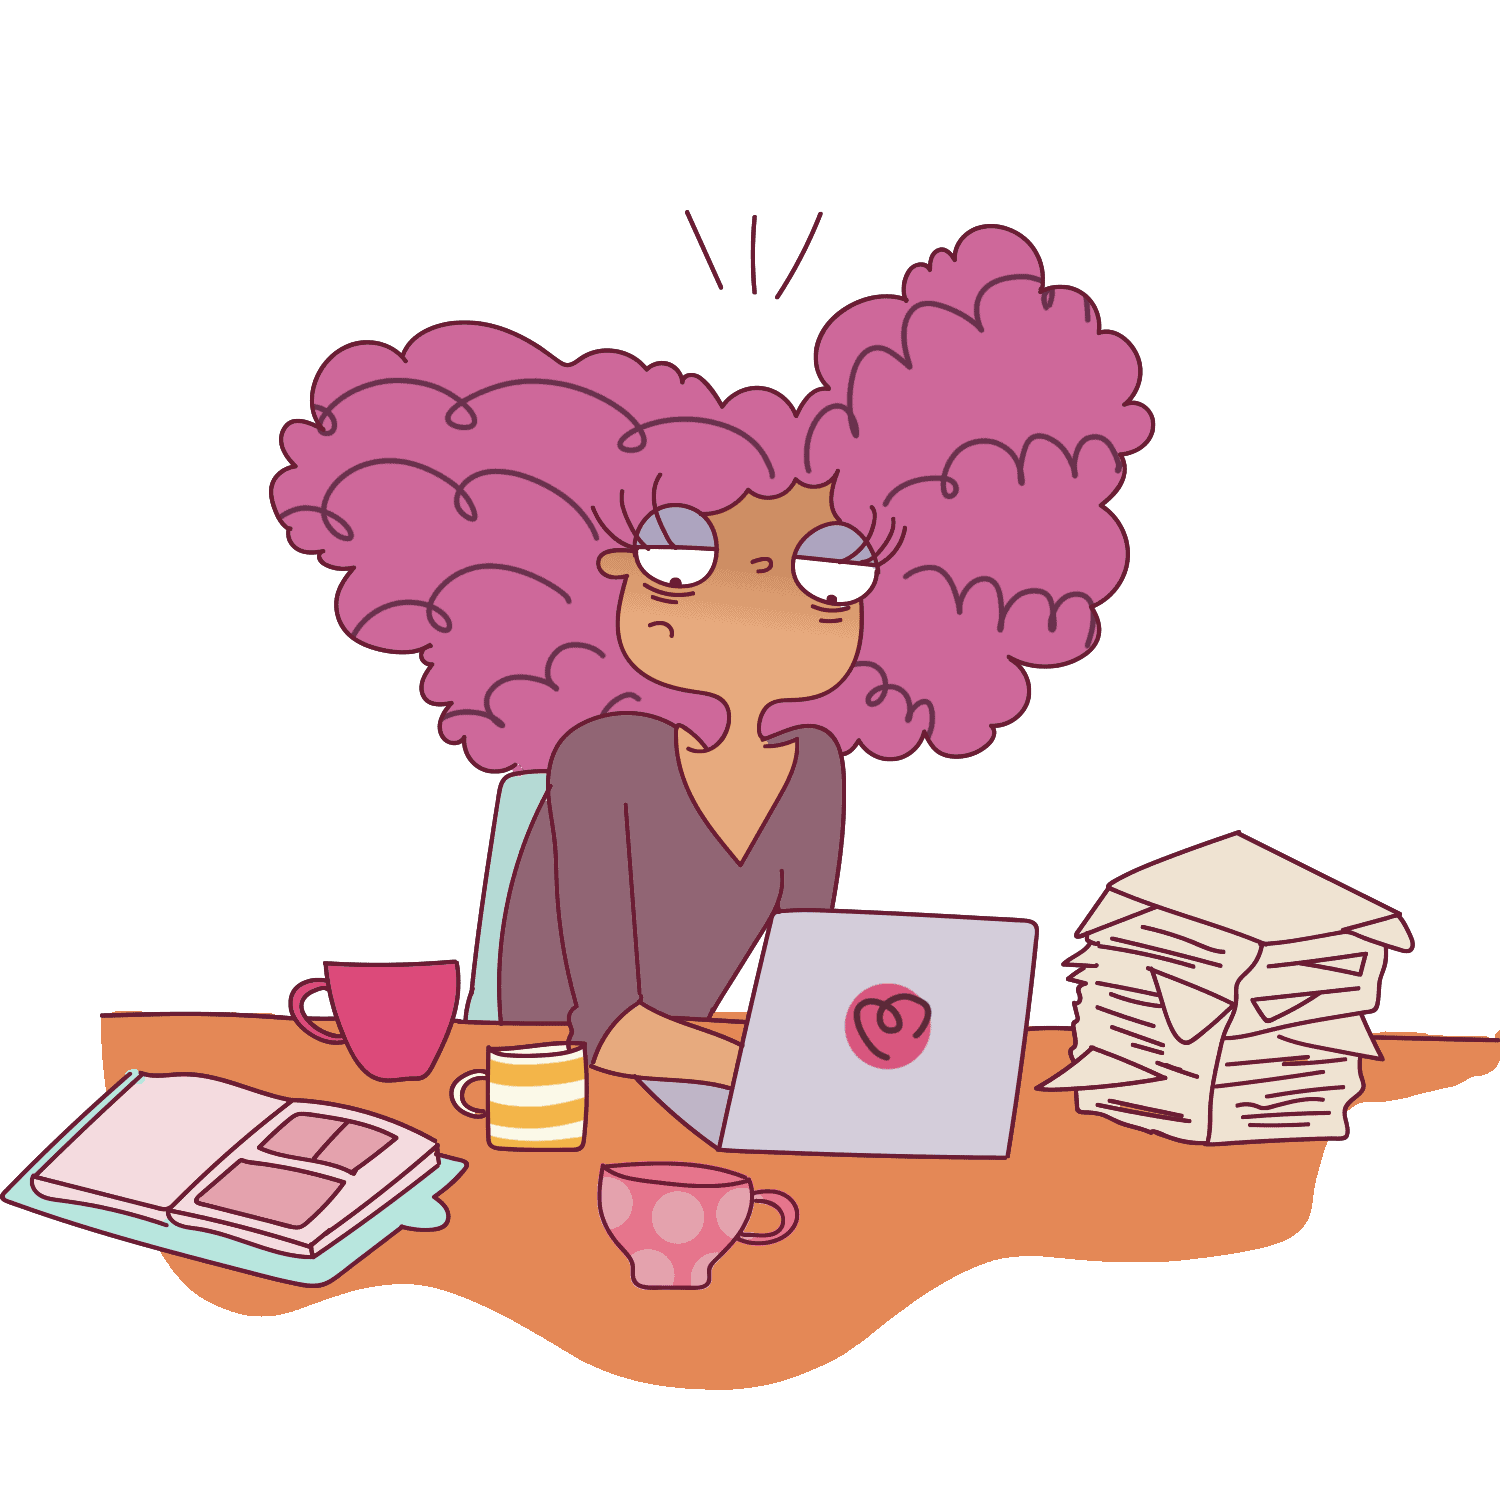 Do not overburden yourself when you're working from home. Stick to fixed working hours.